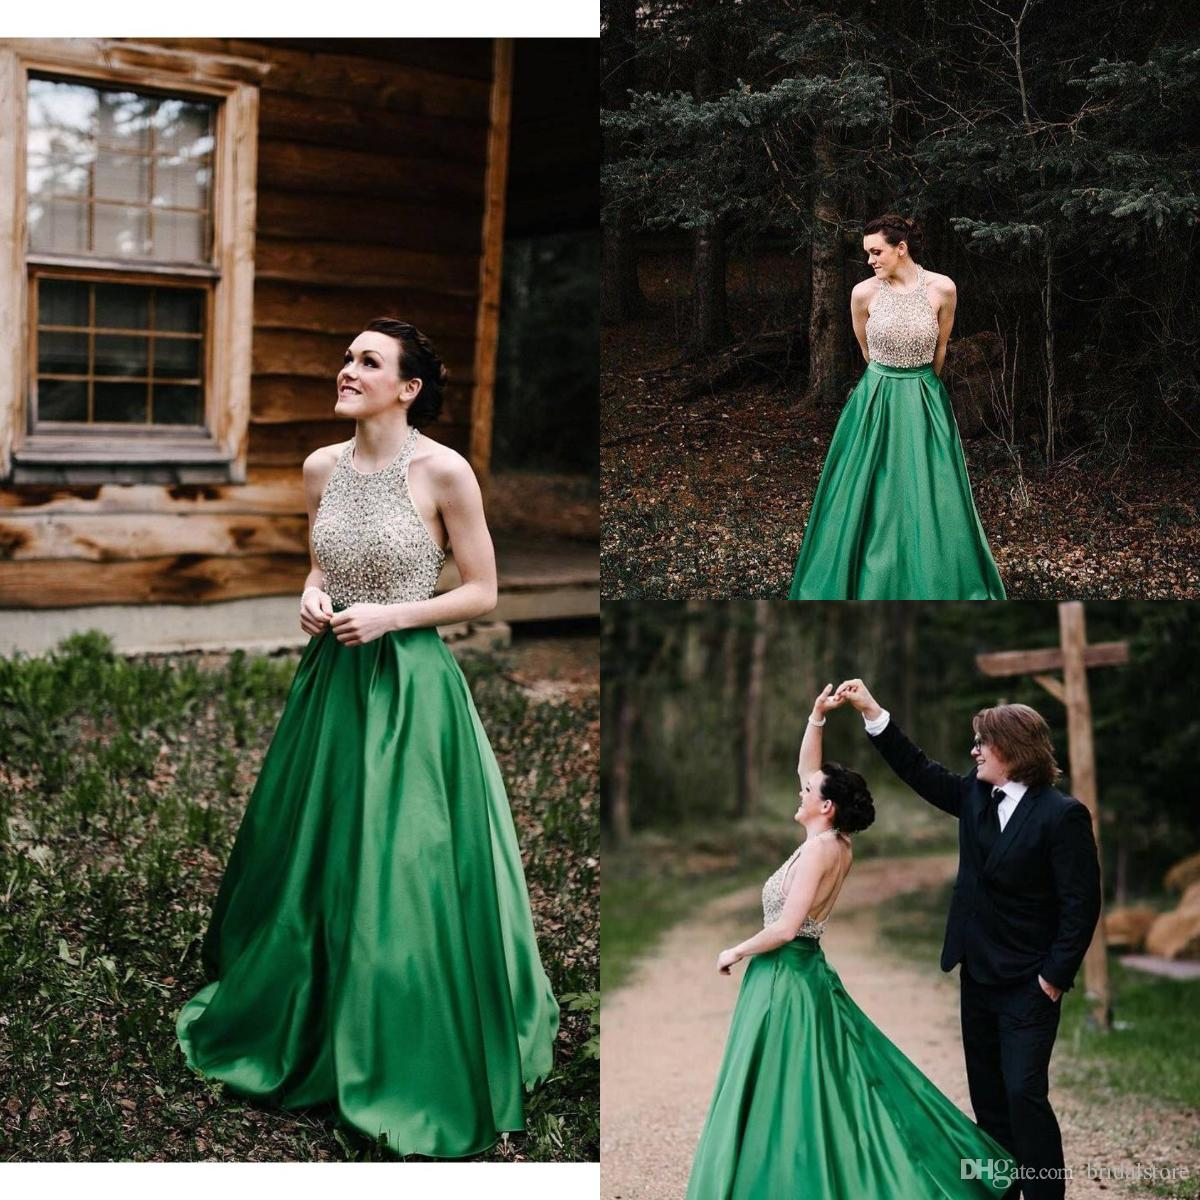 3f6ab2cf08d Classics Emerald Top Beaded Prom Dresses Halter Sexy Backless Satin Evening  Gowns Country Formal Summer Vintage Robes De Soirée 2019 Aline Plus Size  Short ...